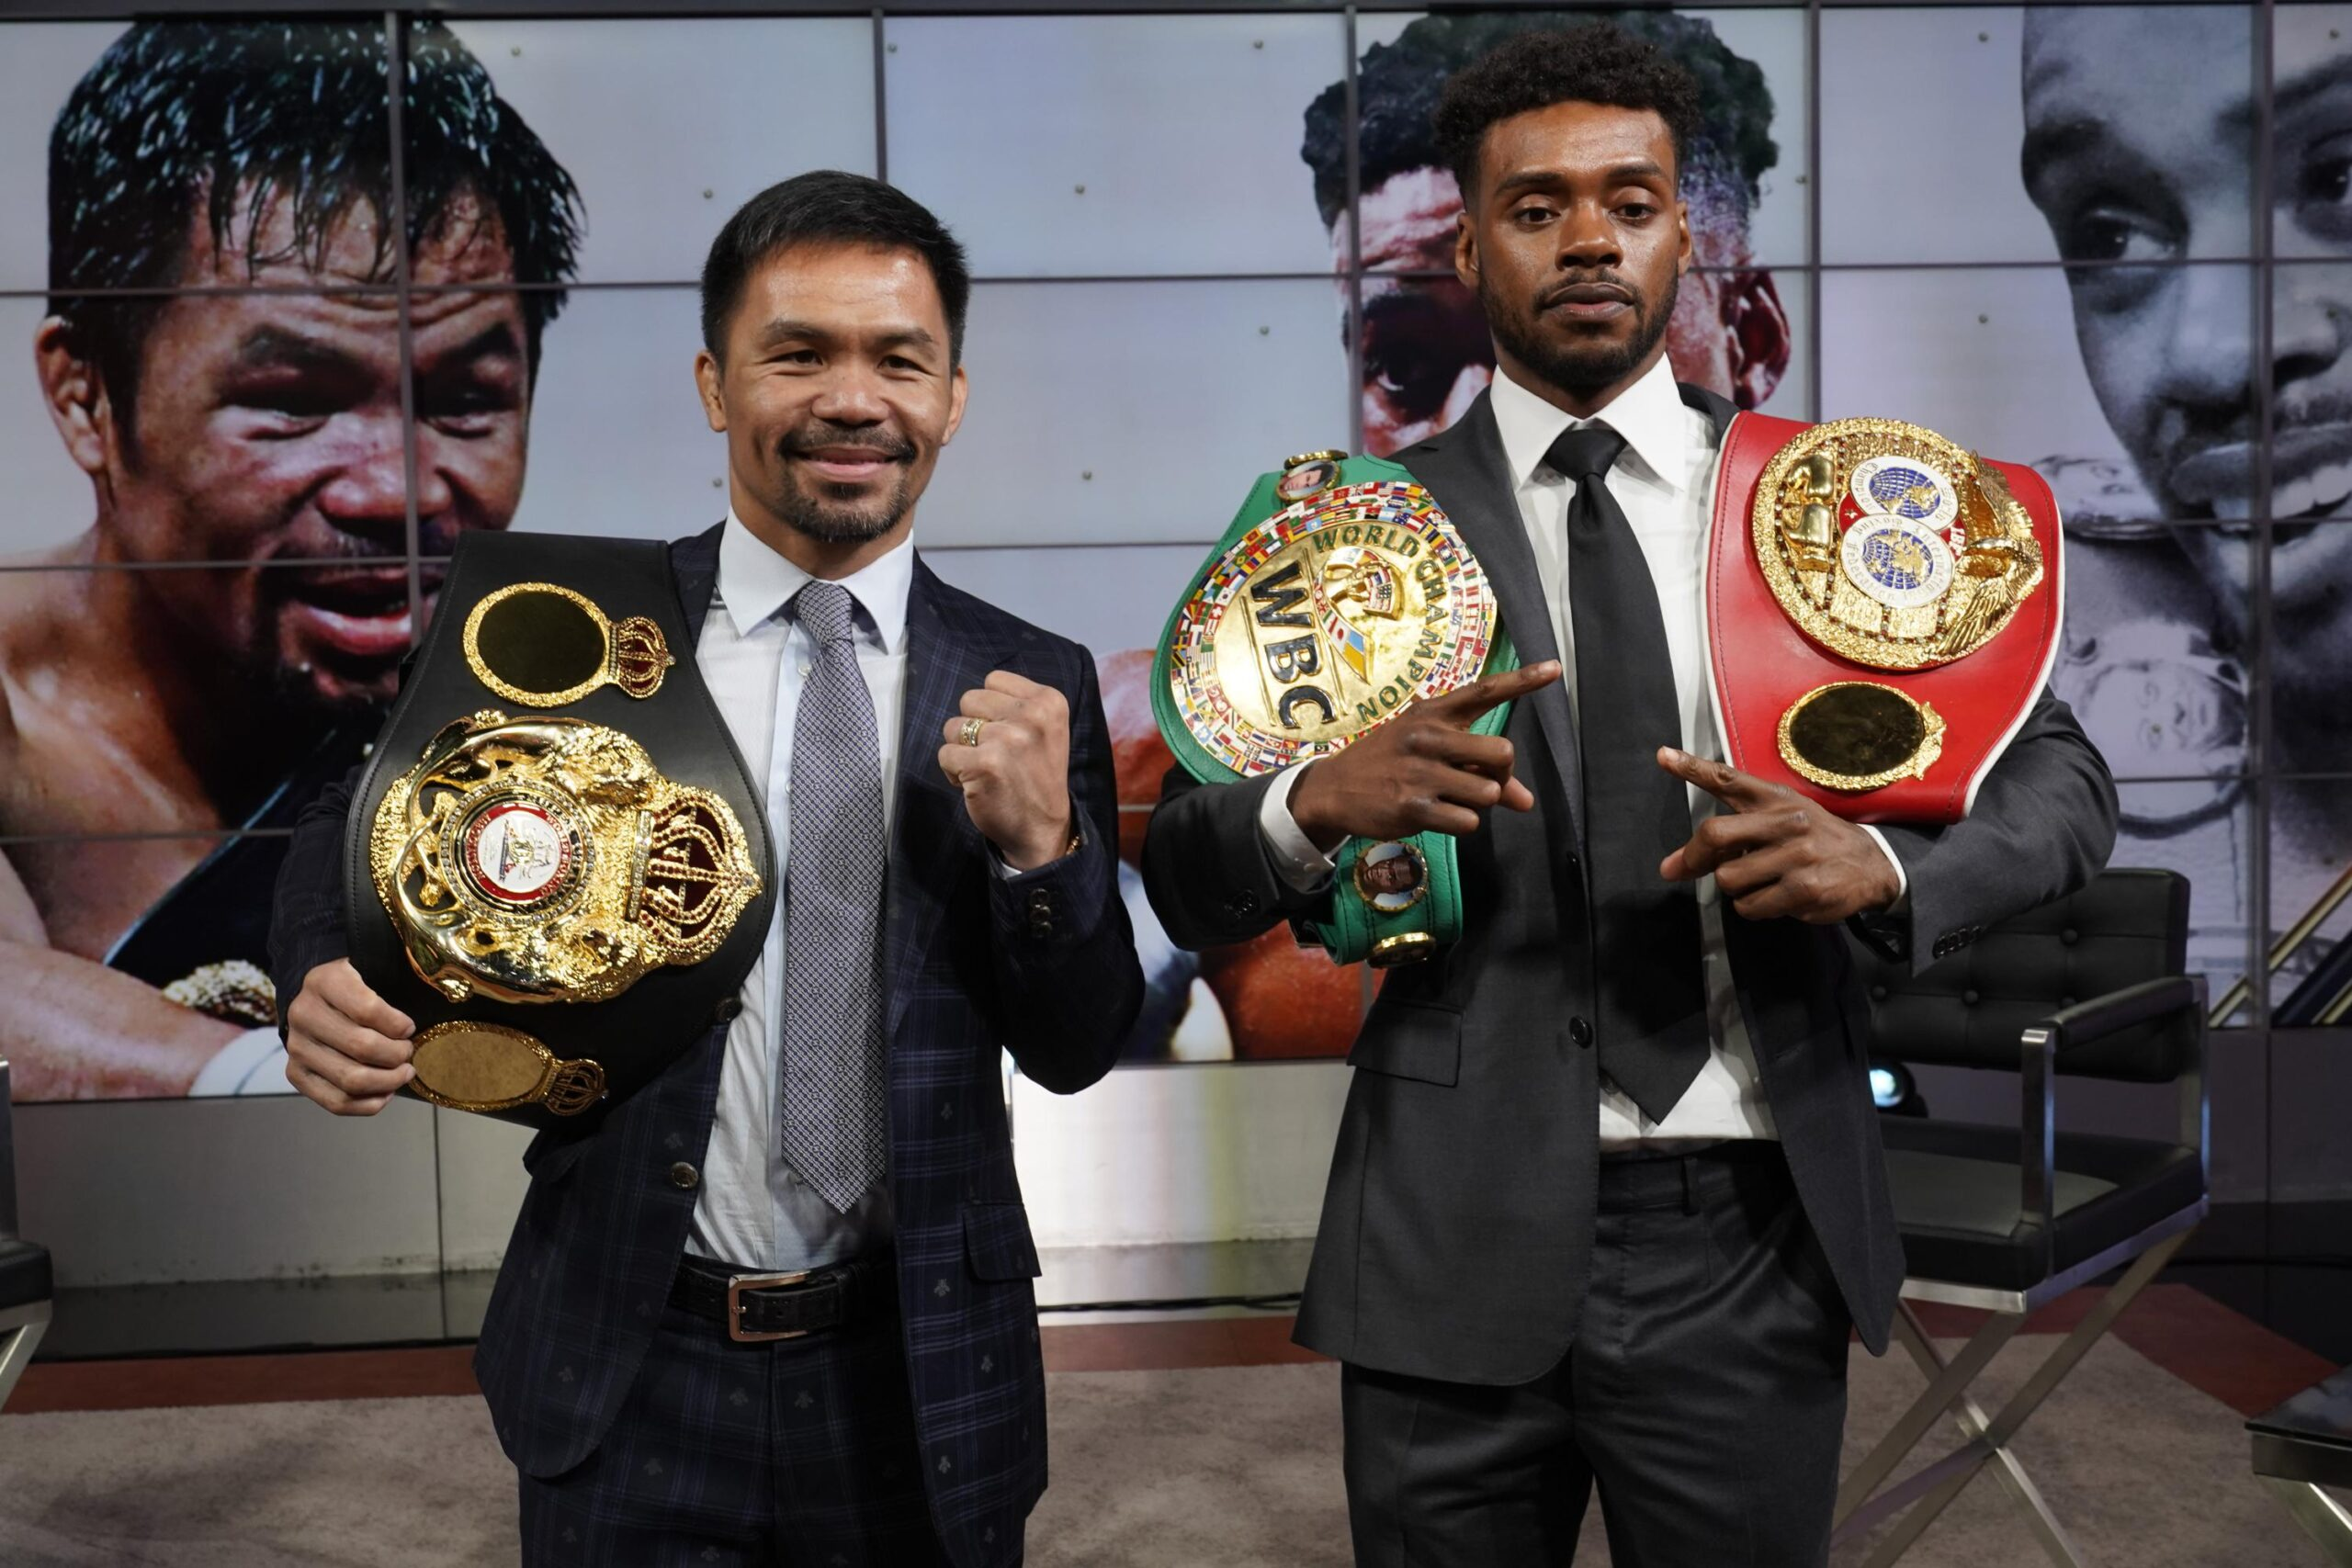 Pacquiao has a chase for P4P king if he beats Spence